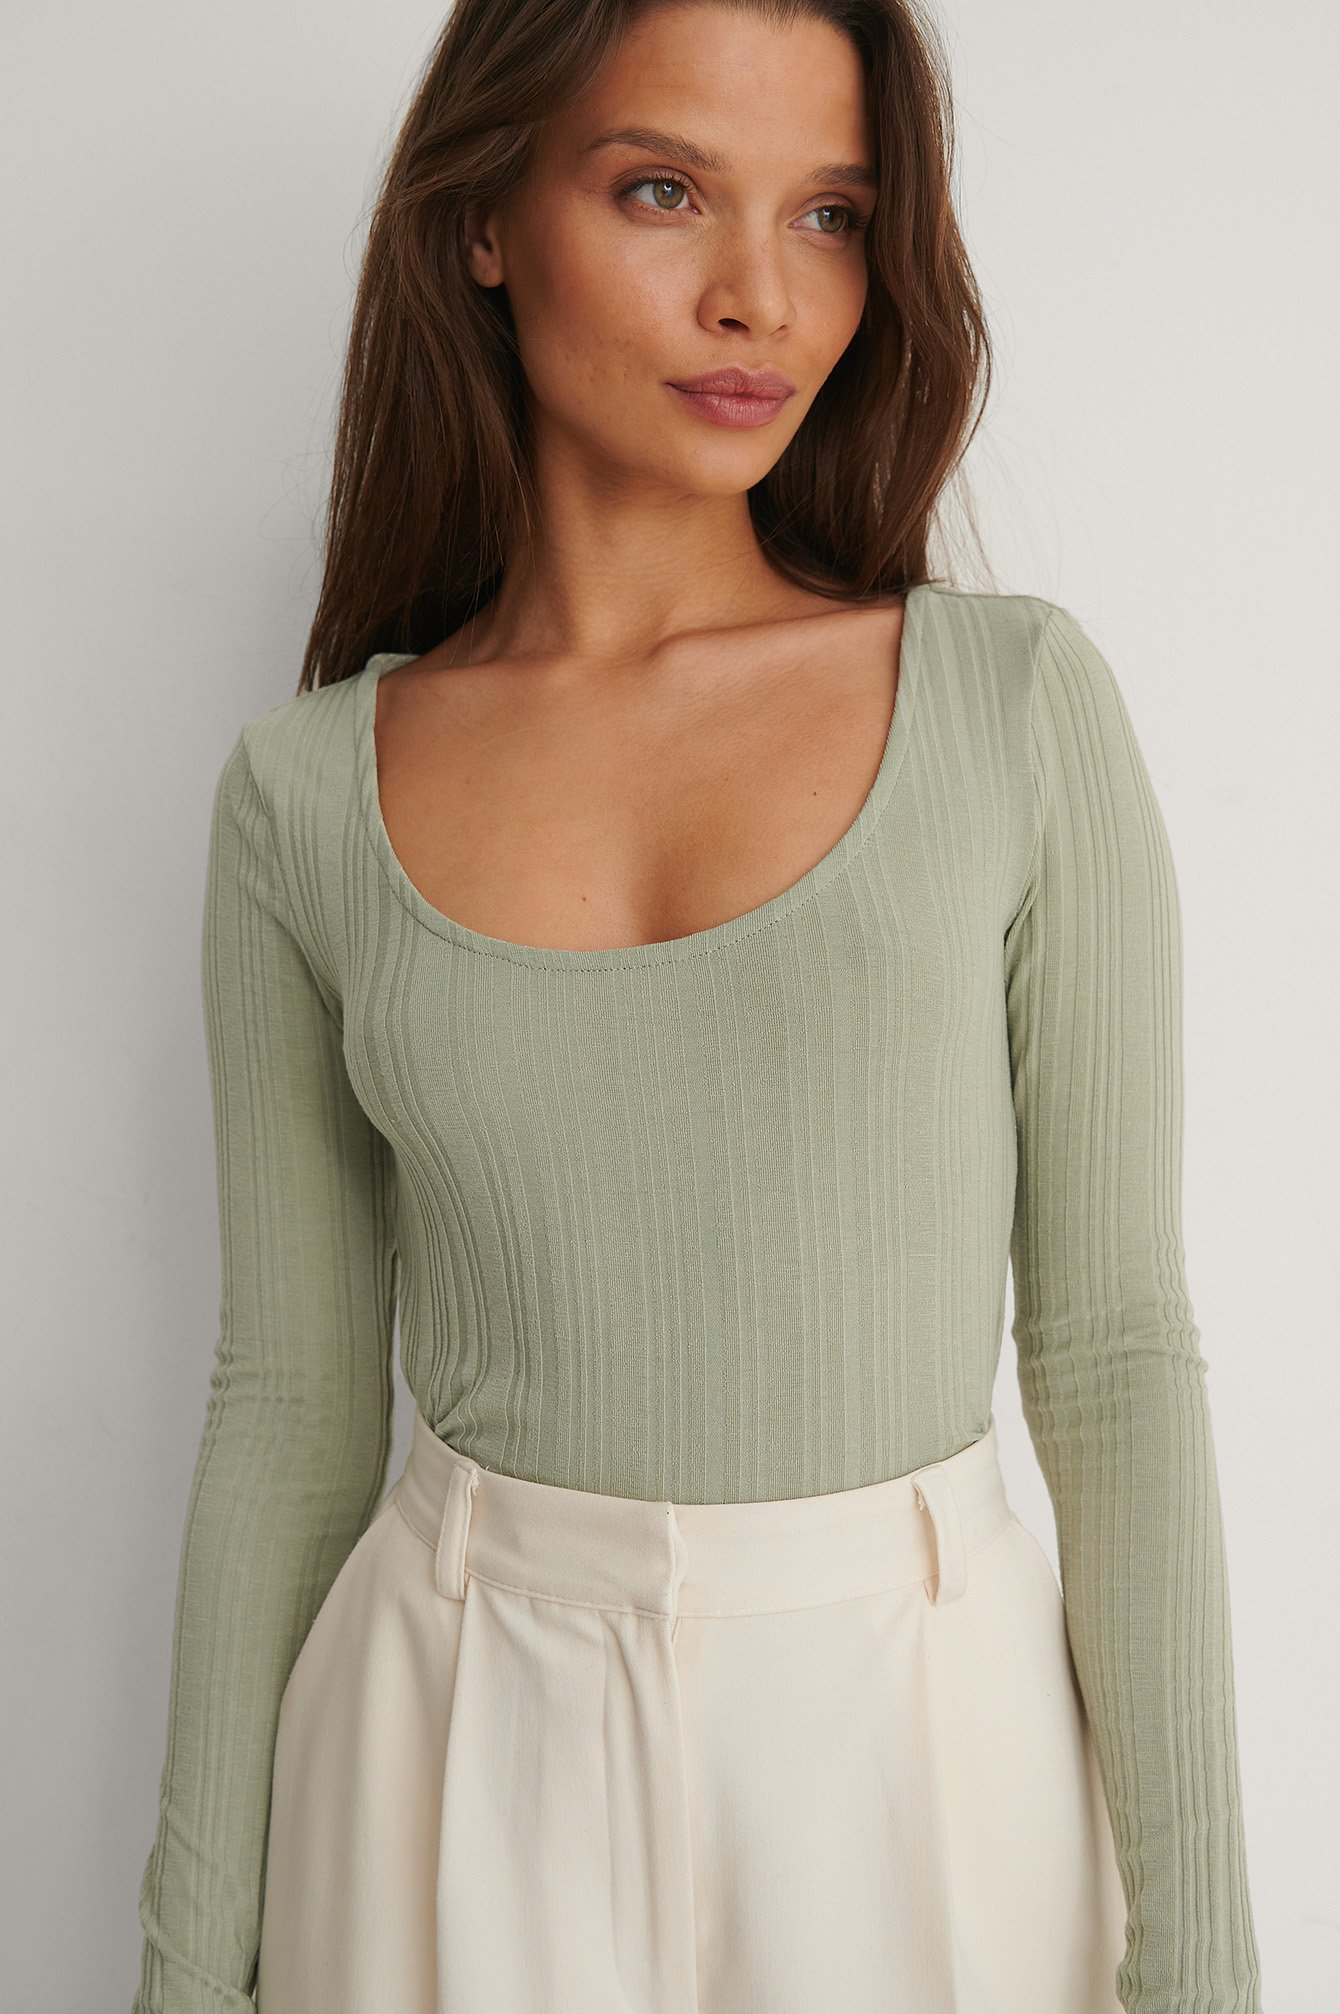 Khaki Recycled Scoop Neck Rib Top